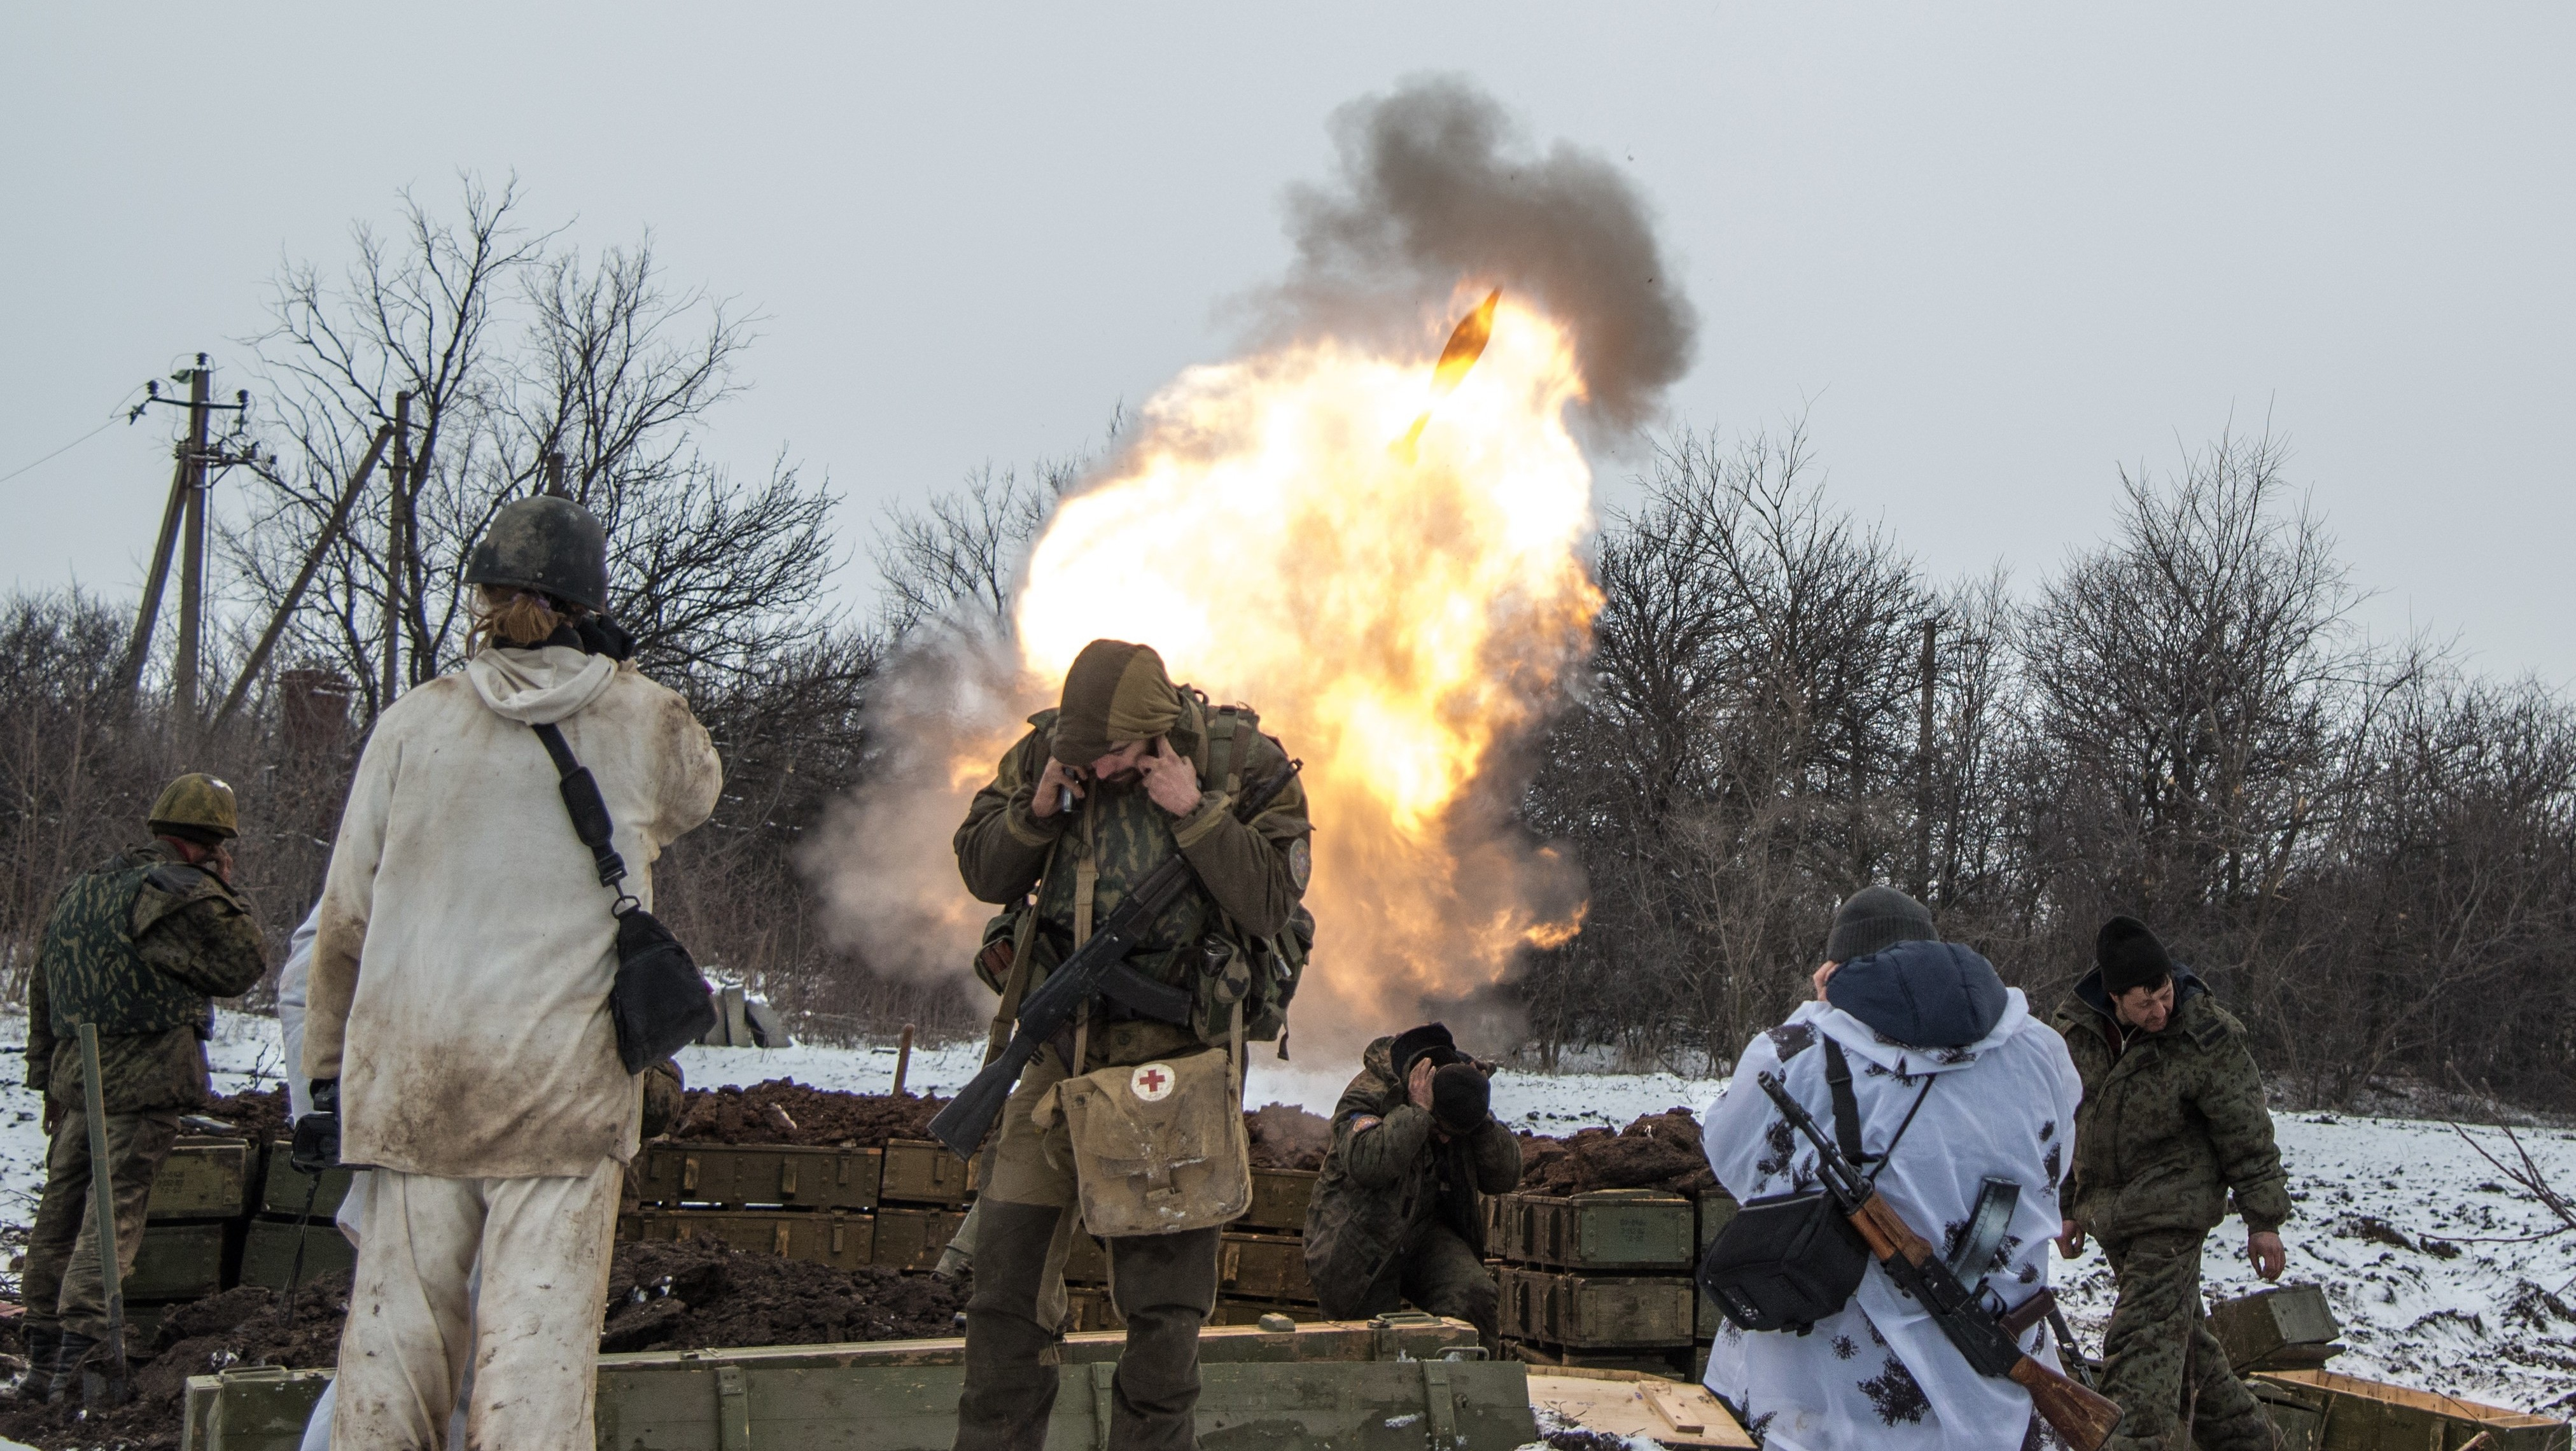 Ukraine Ceasefire Ignored as Fierce Battle for Debaltseve Continues to Rage